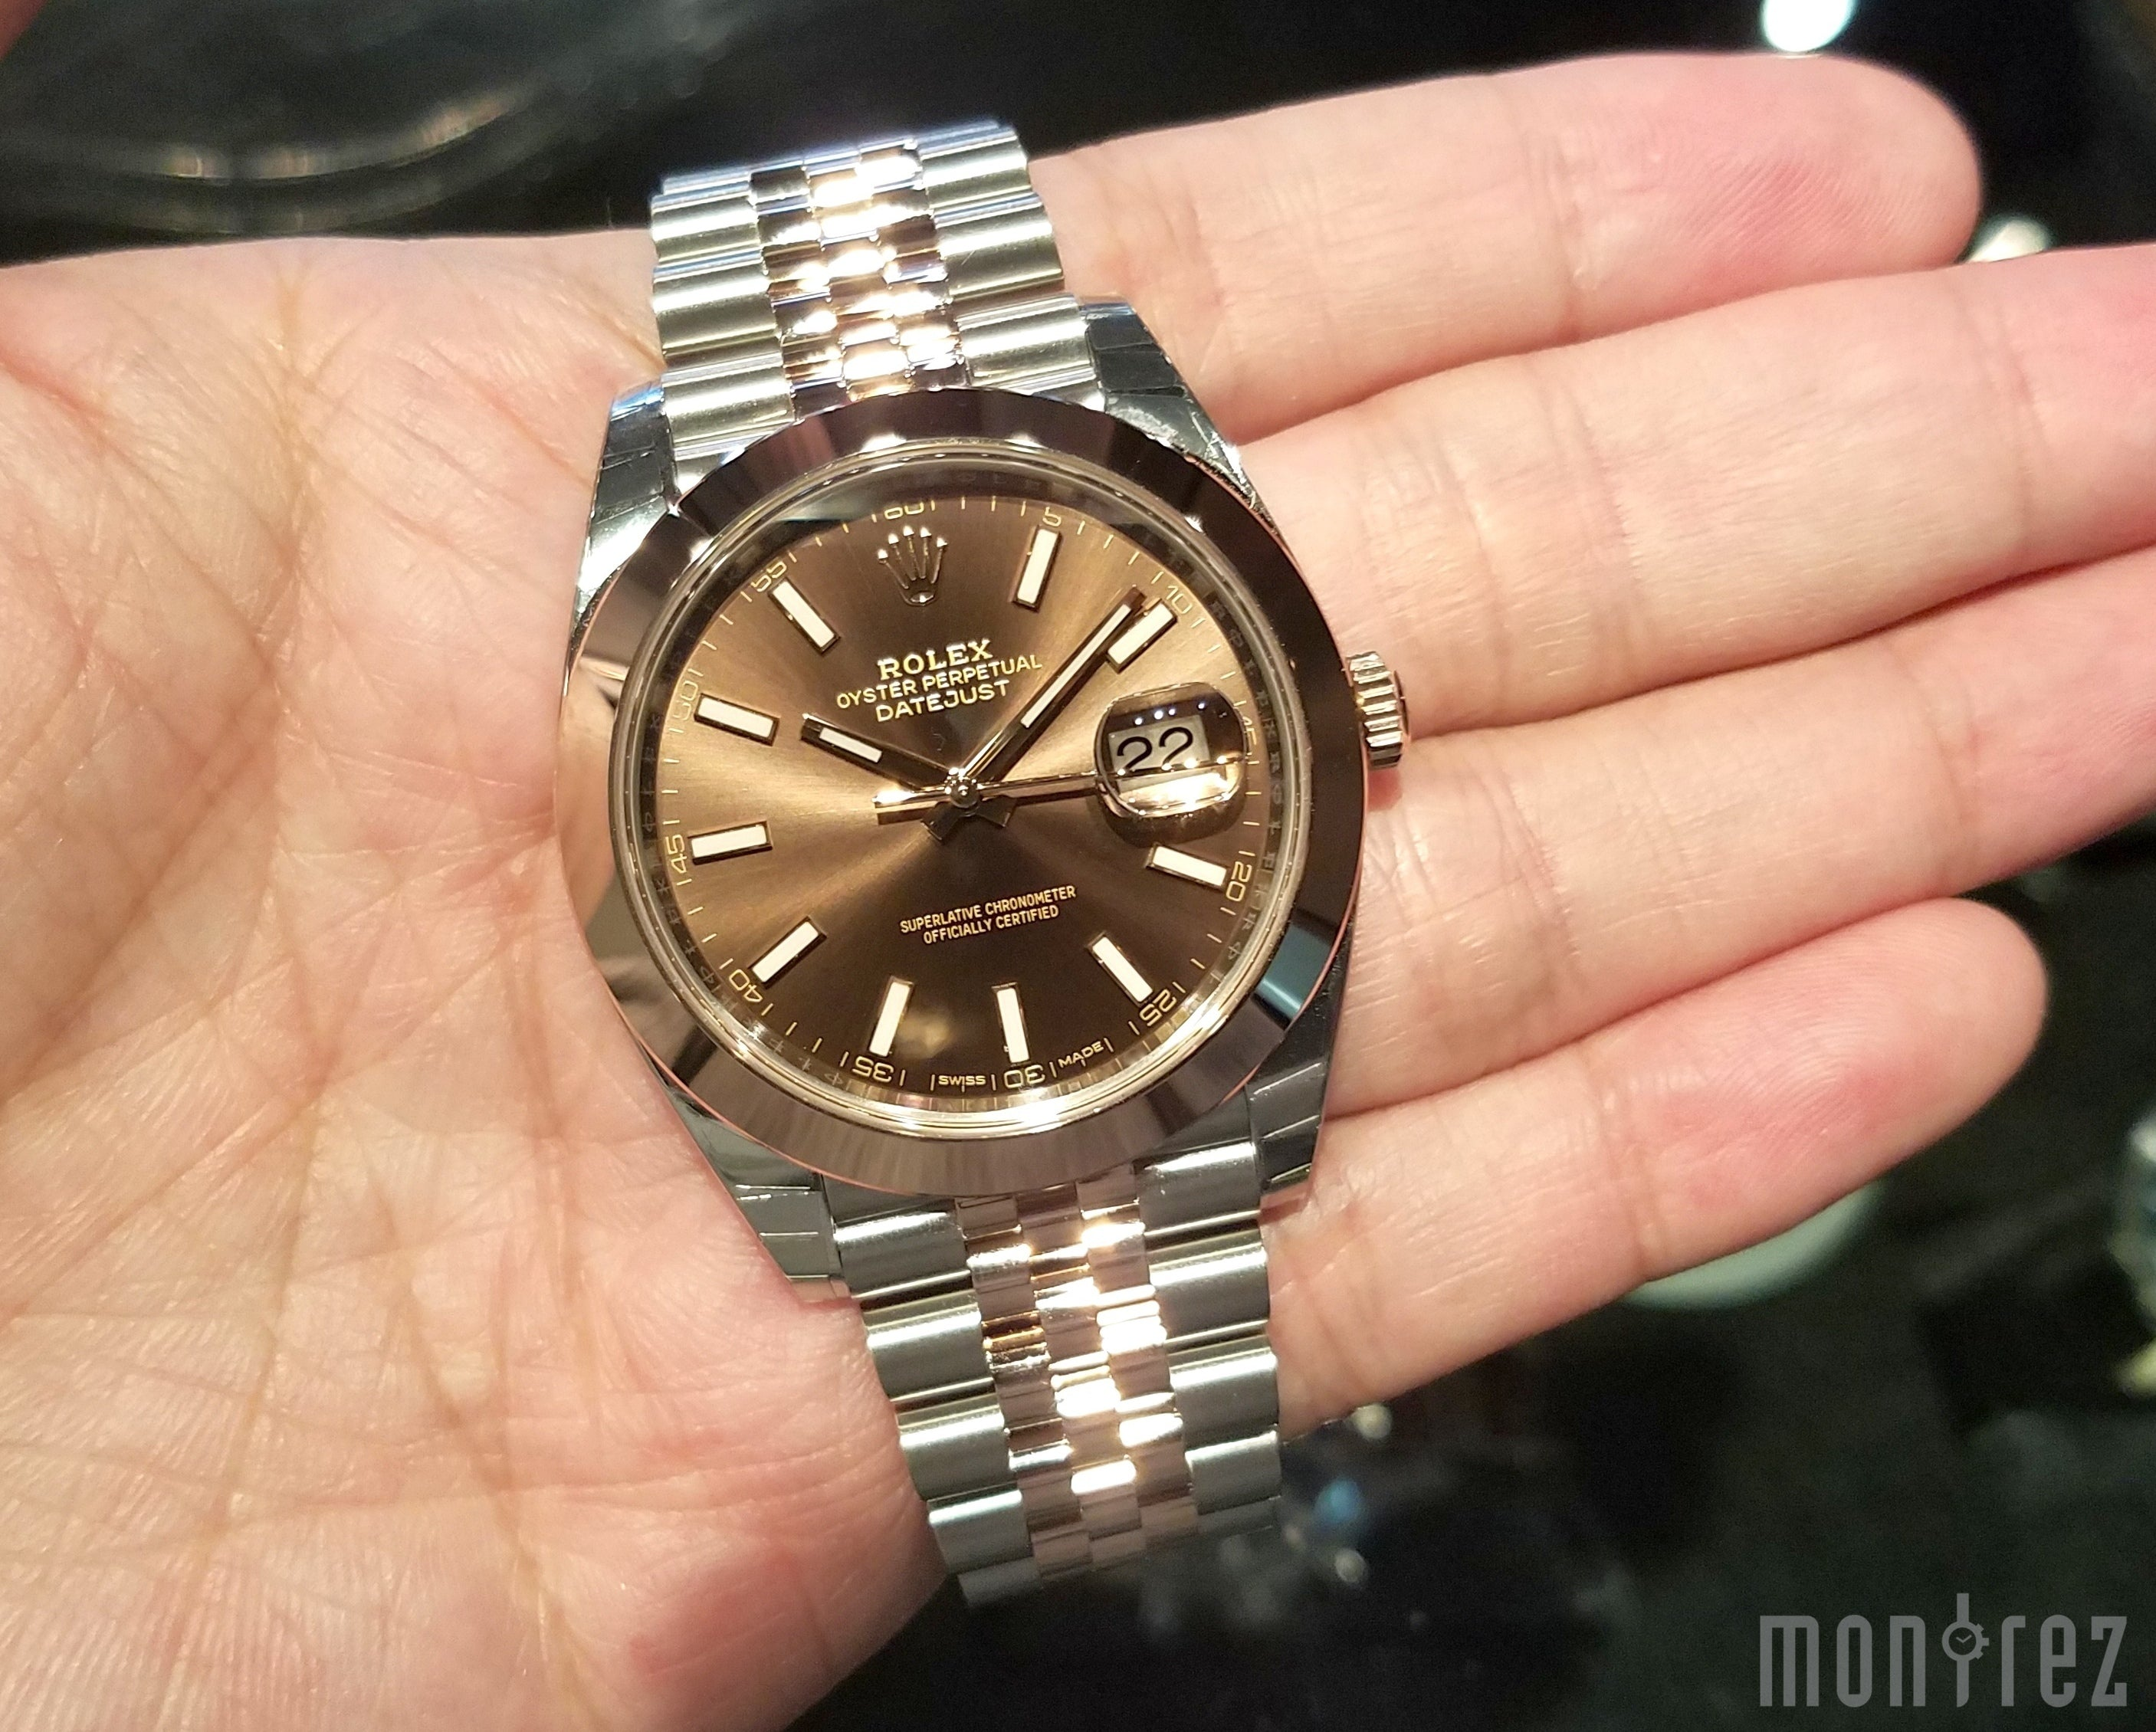 Rolex Datejust 41mm 126301 Chocolate Dial (Jubilee Bracelet)